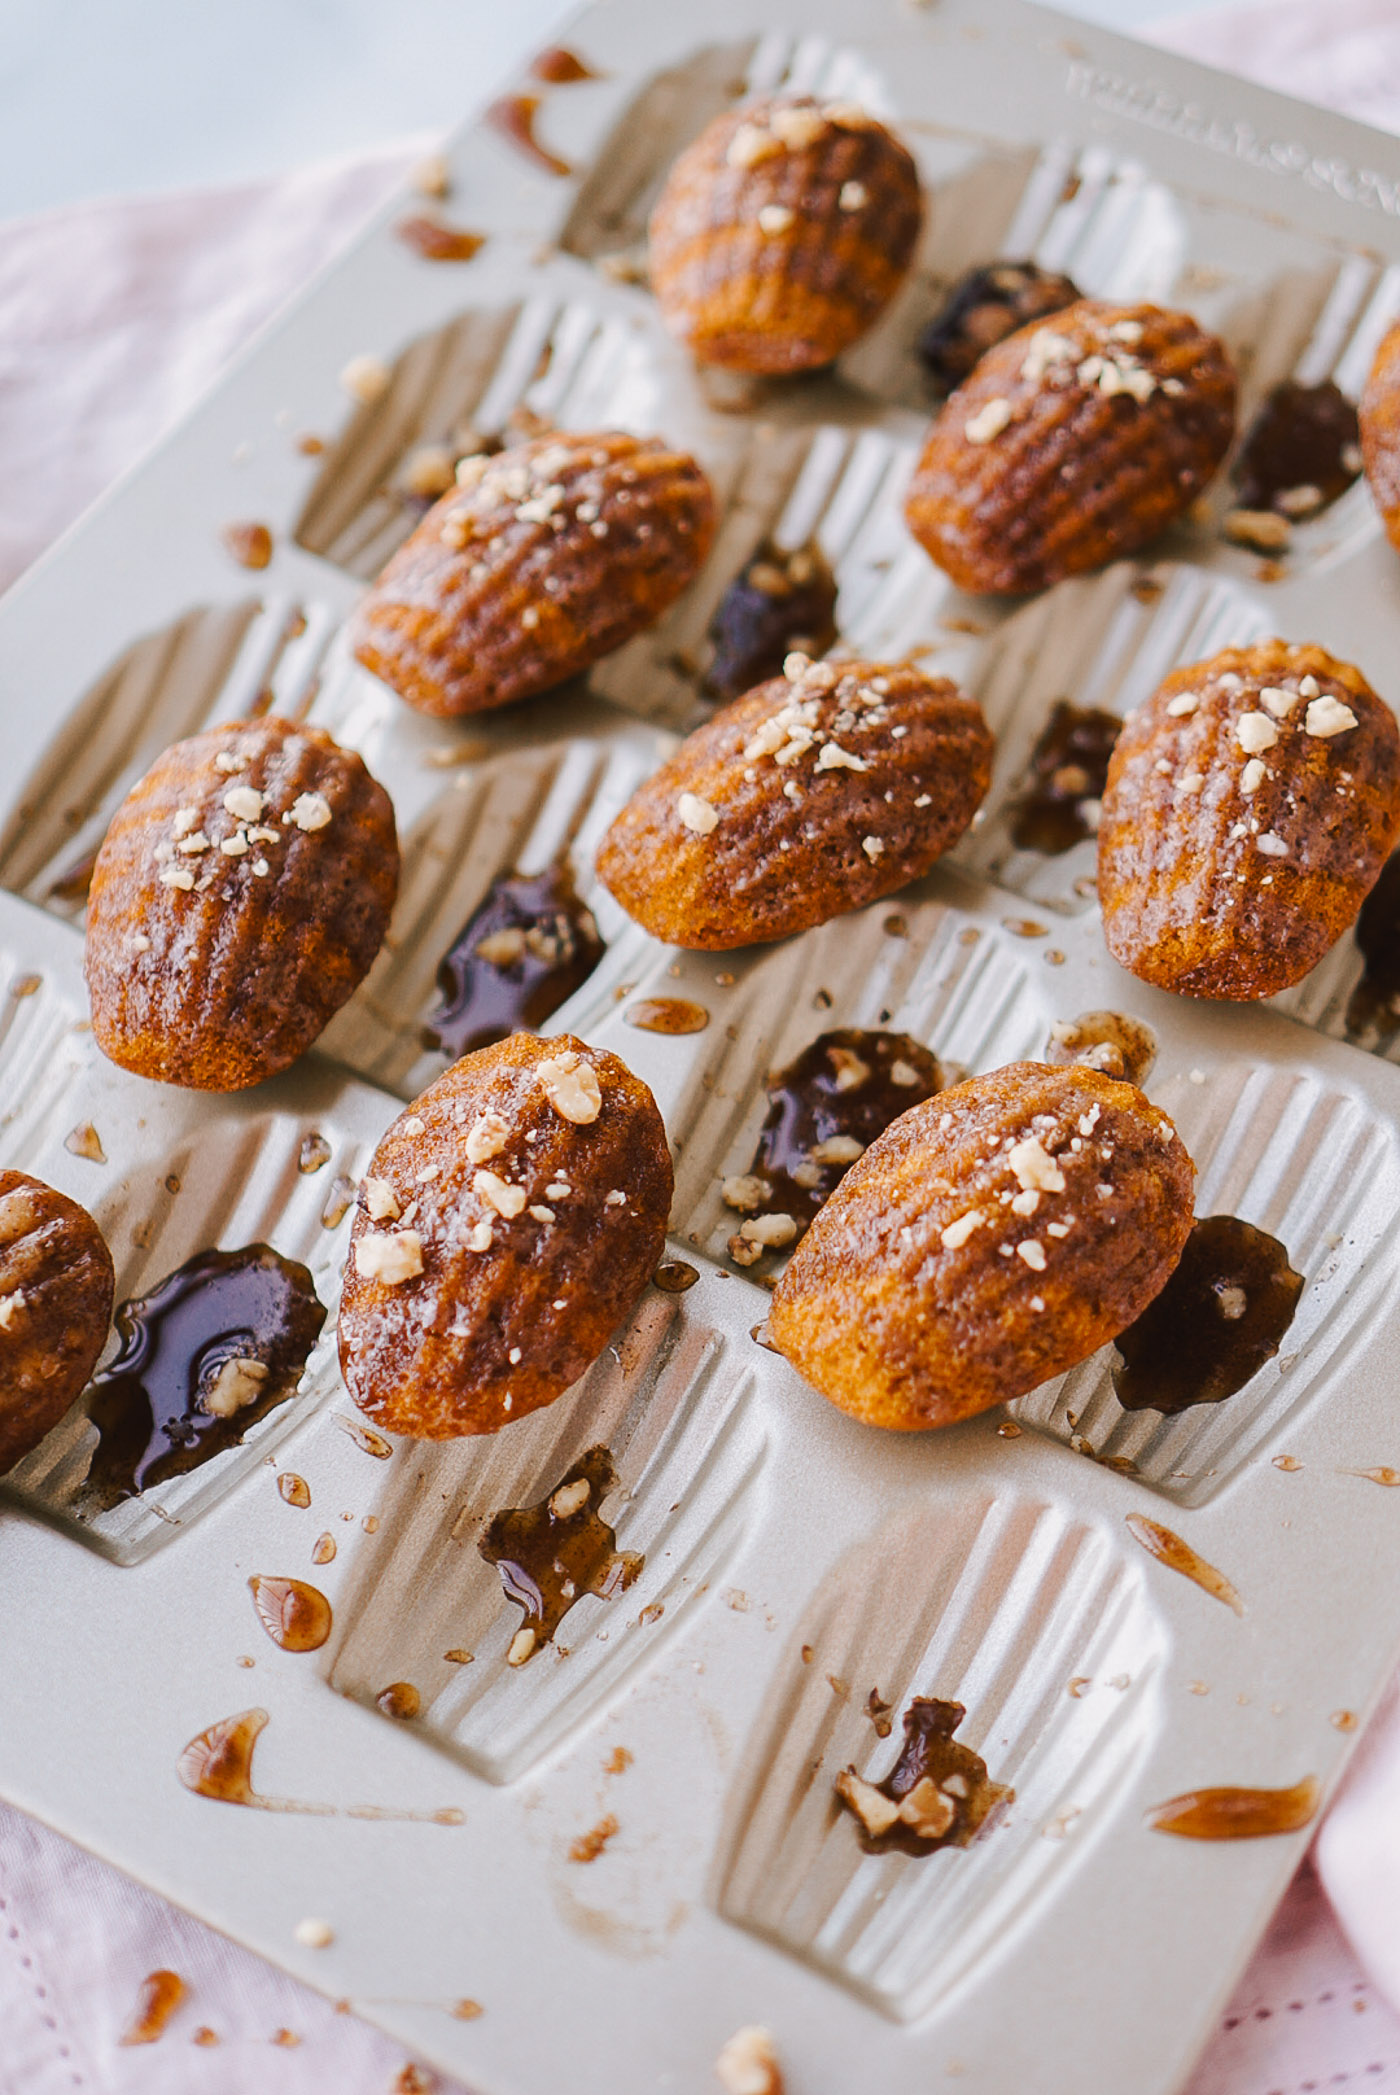 pumpkin spice madeleines on gold madeleine pan topped with maple glaze and chopped pecans sitting on pink fabric napkin